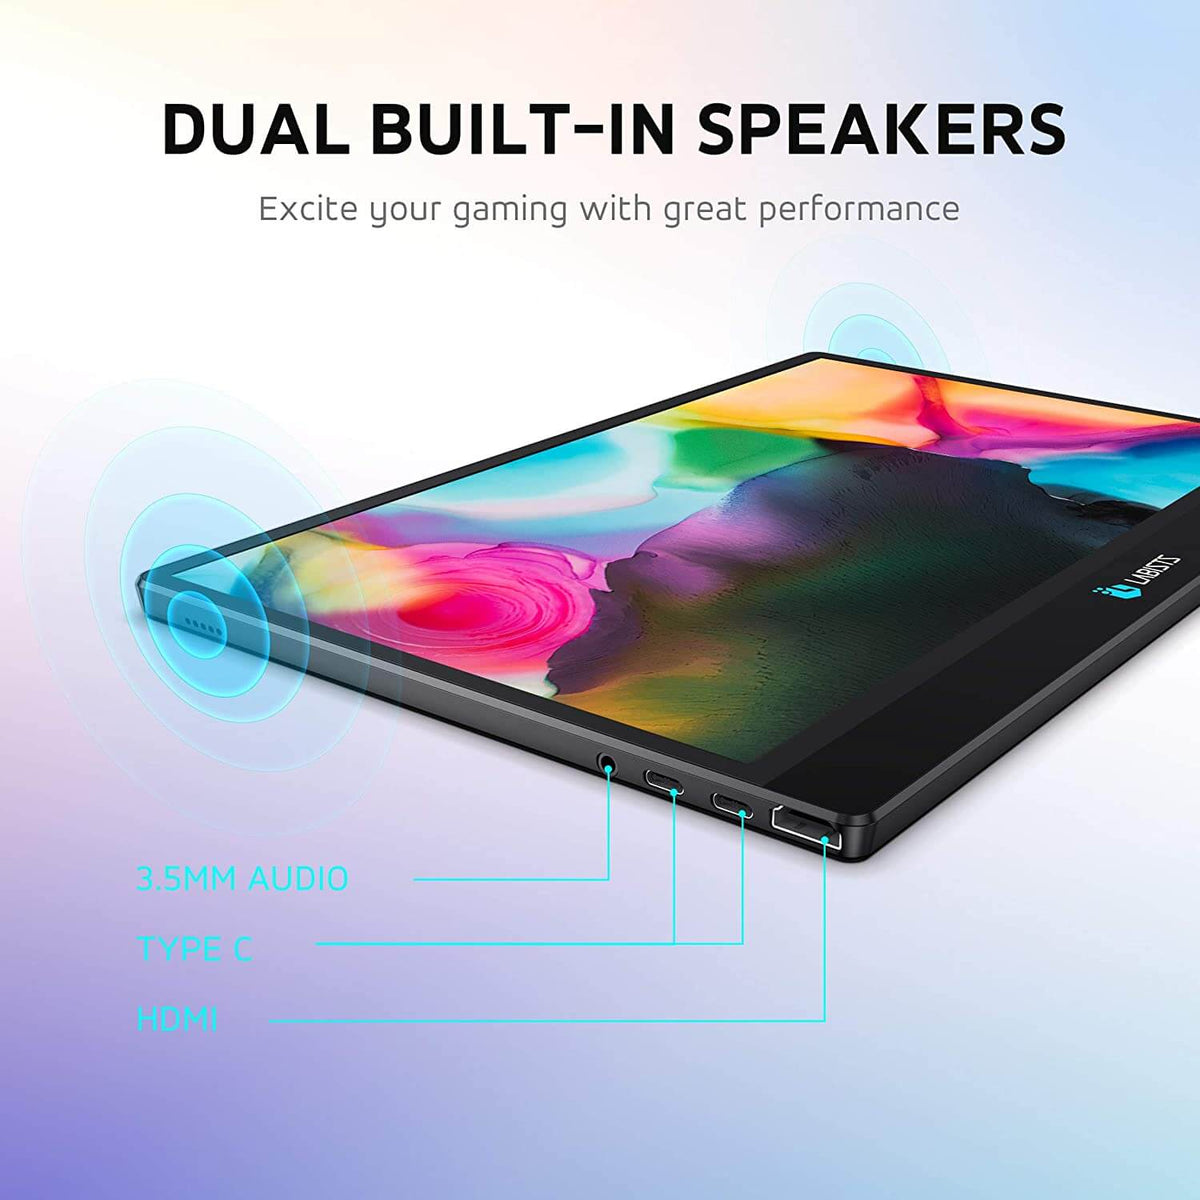 DUAL BUILT-IN SPEAKERS